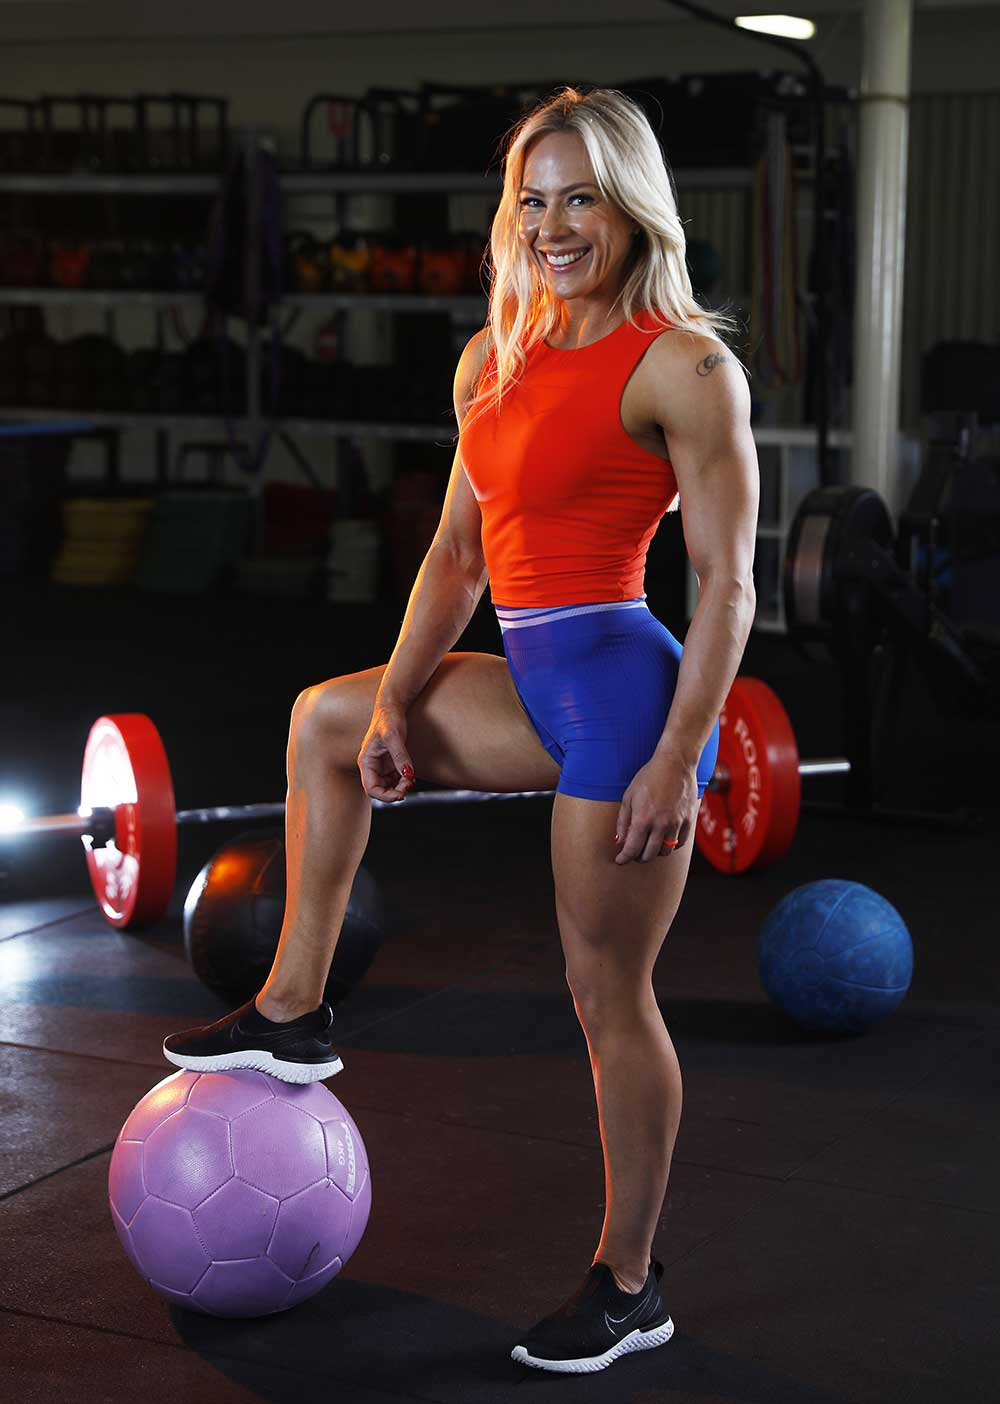 Personal trainer and health Coach Chantel